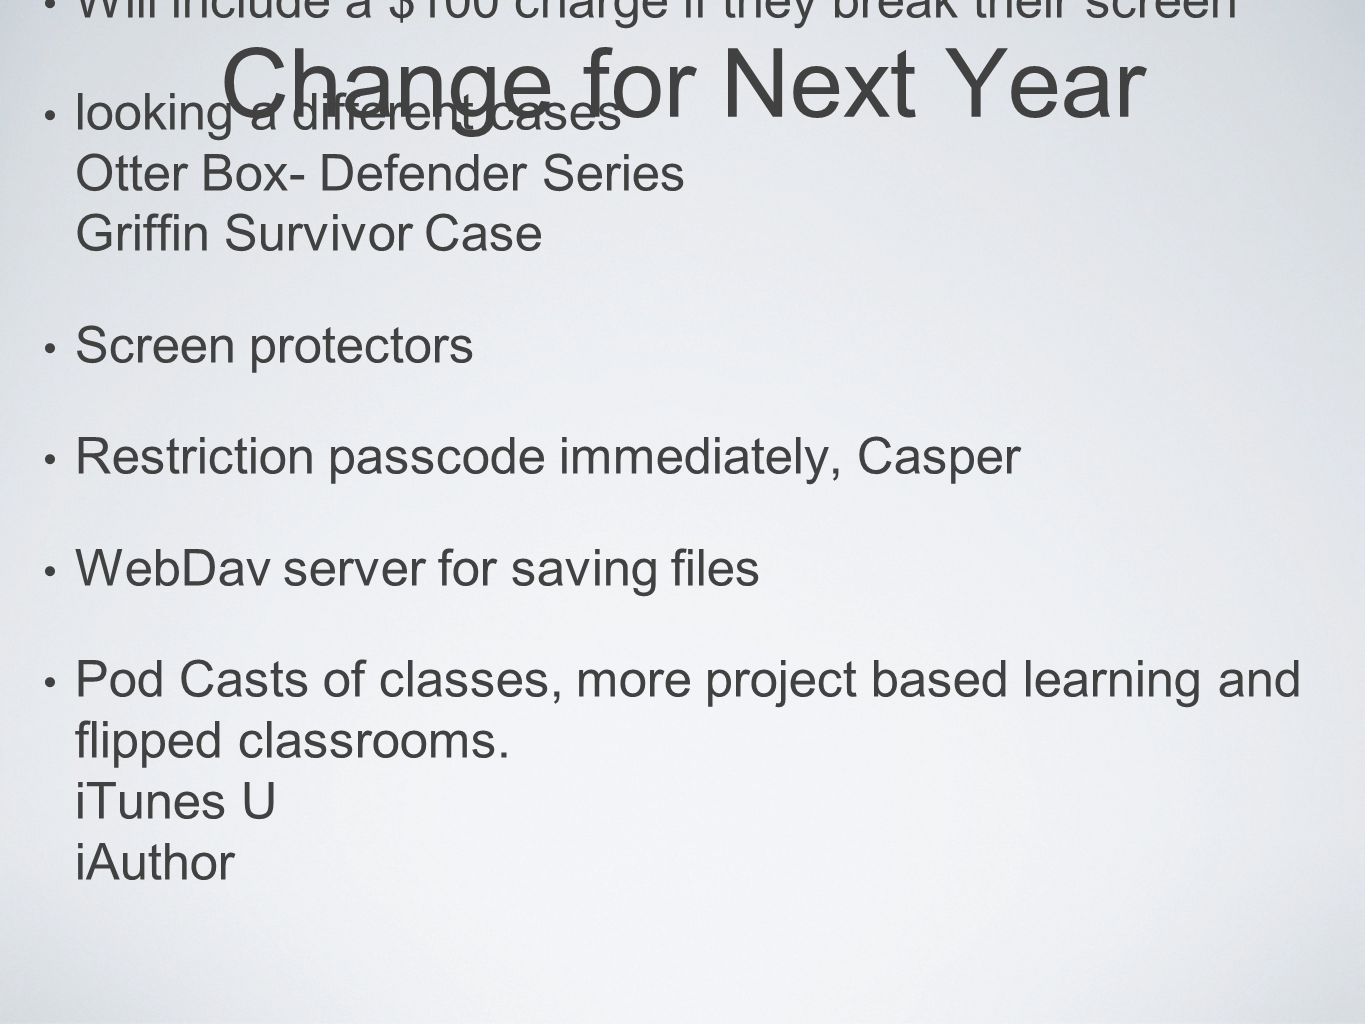 Change for Next Year Will include a $100 charge if they break their screen looking a different cases Otter Box- Defender Series Griffin Survivor Case Screen protectors Restriction passcode immediately, Casper WebDav server for saving files Pod Casts of classes, more project based learning and flipped classrooms.